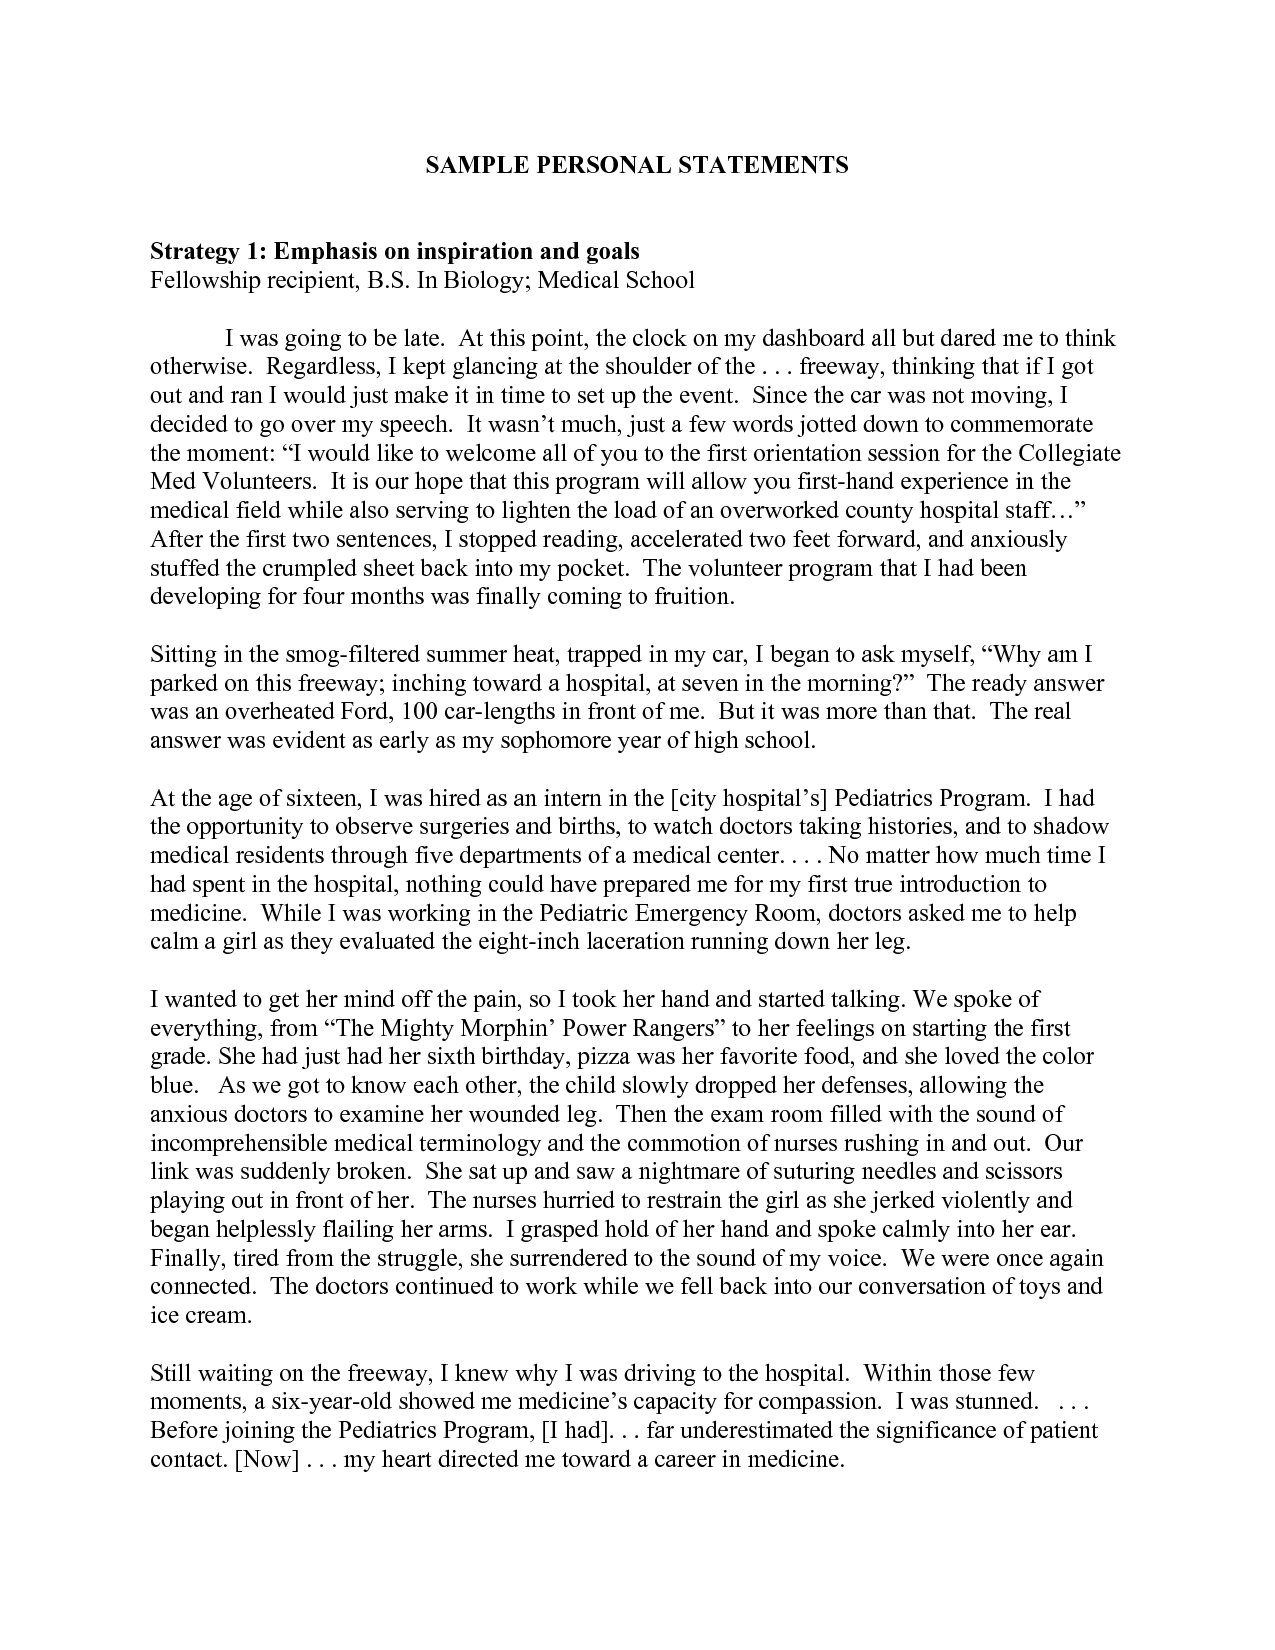 personal statement examples sample personal statements – Personal Statement Template